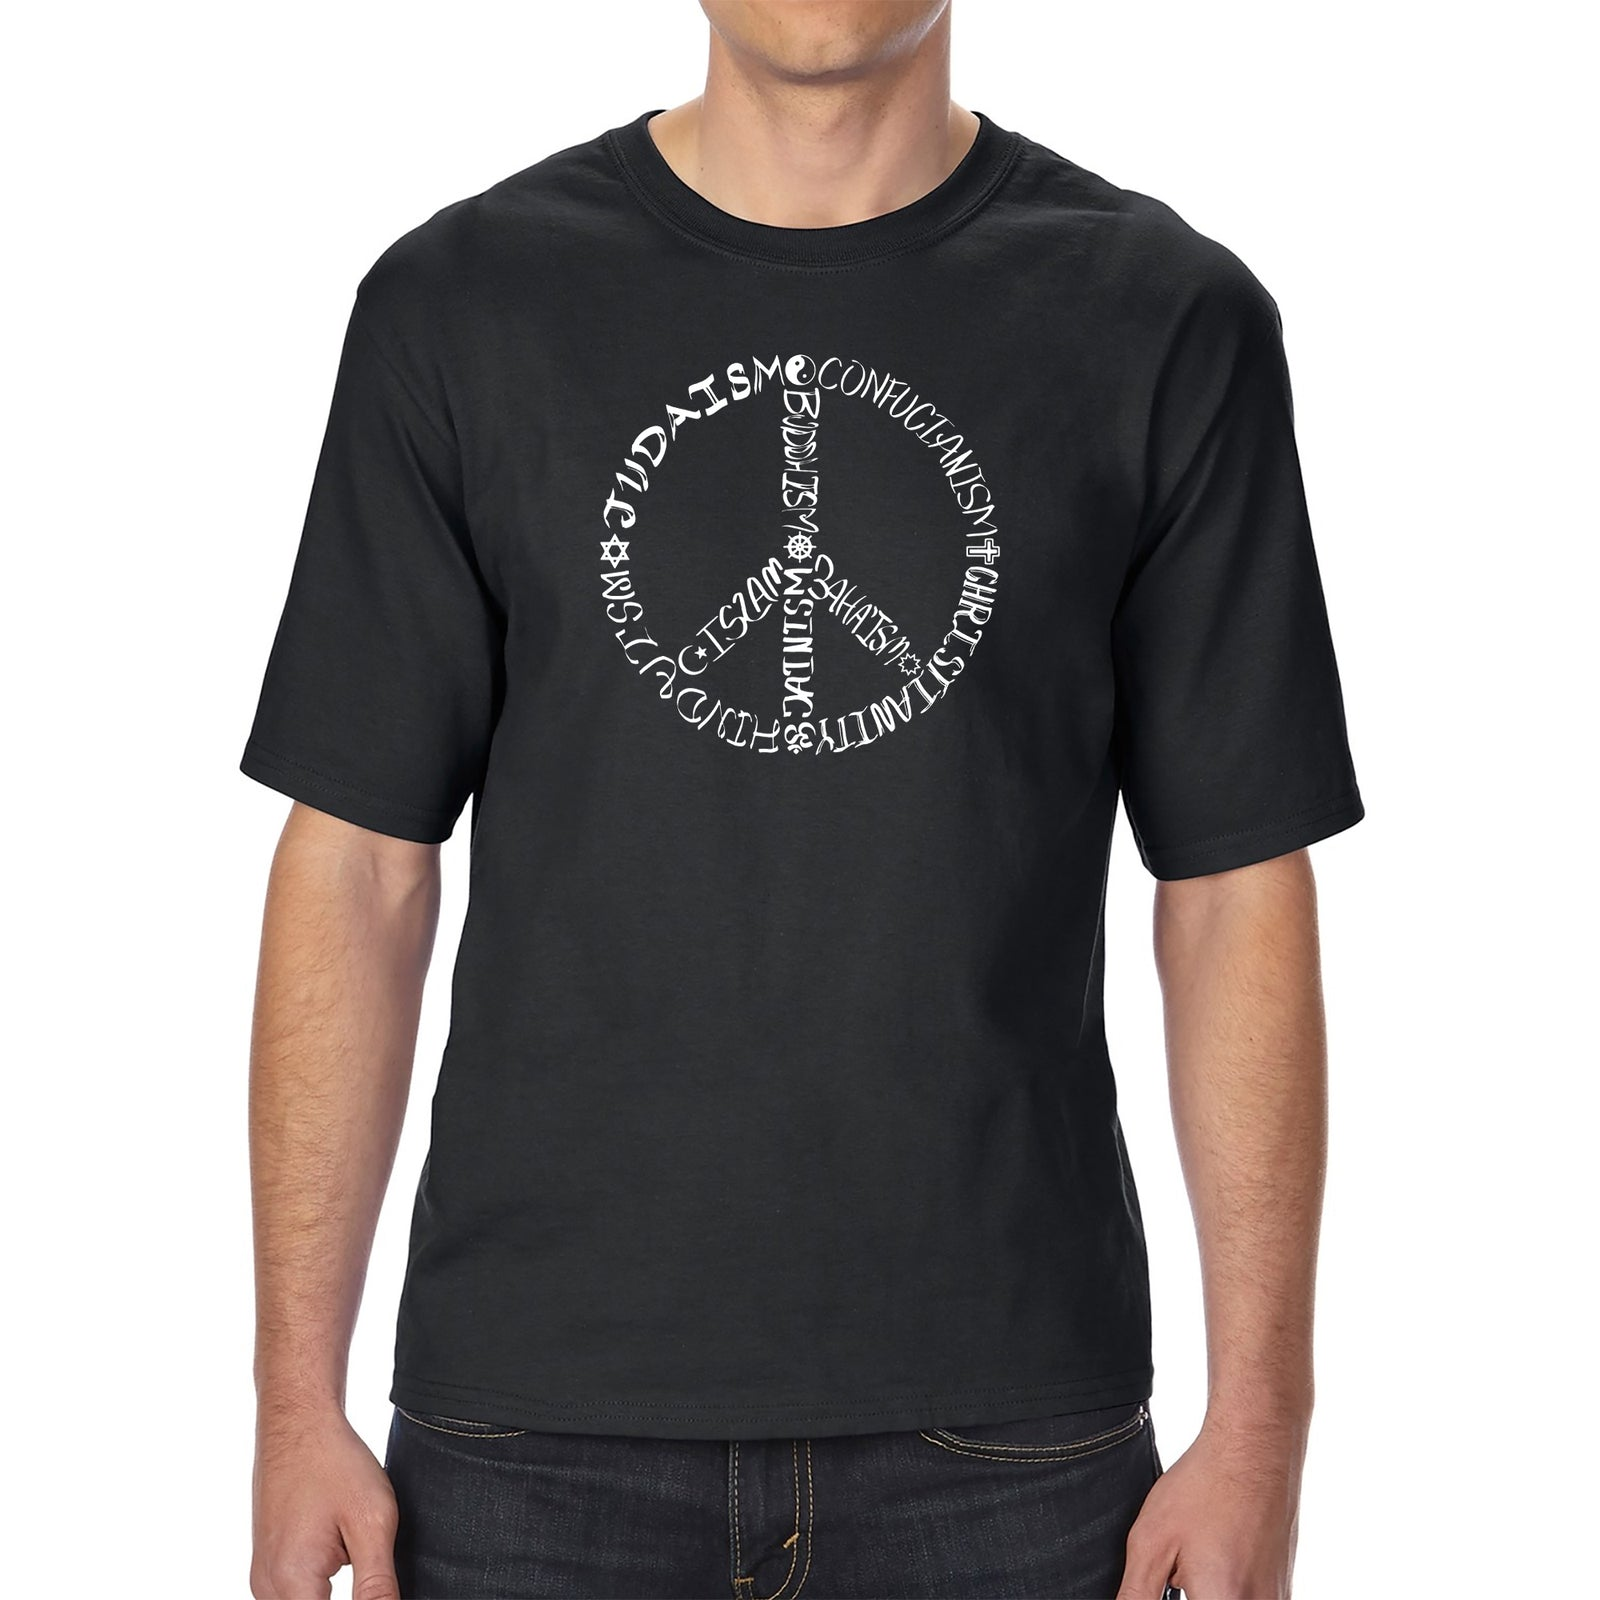 Men's Tall and Long Word Art T-shirt - Different Faiths peace sign